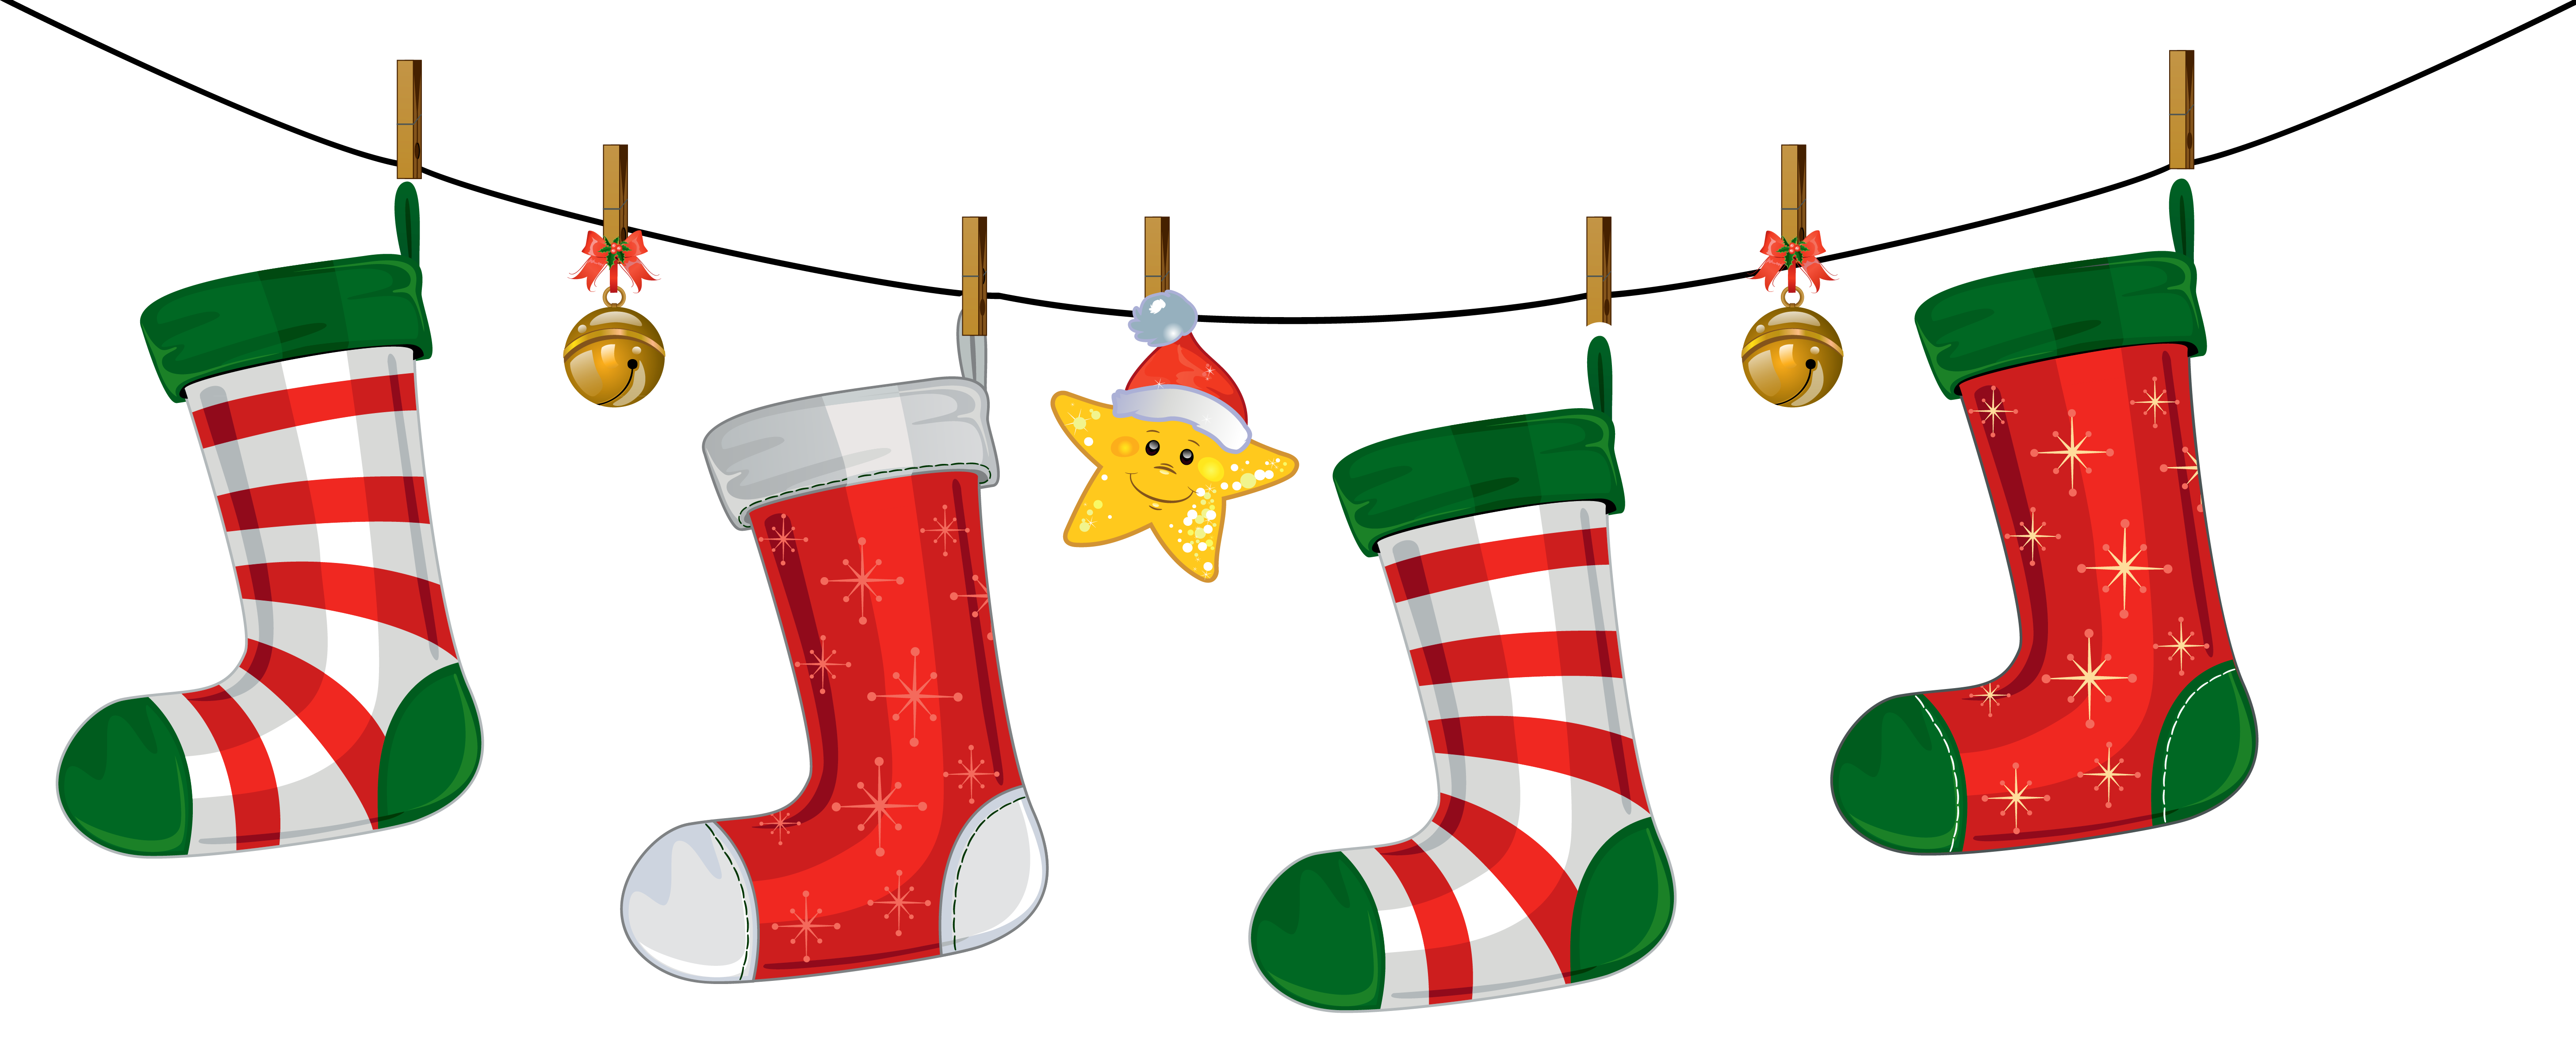 Transparent Christmas Stockings Decorati-Transparent Christmas Stockings Decoration Png Clipart Japoland-16